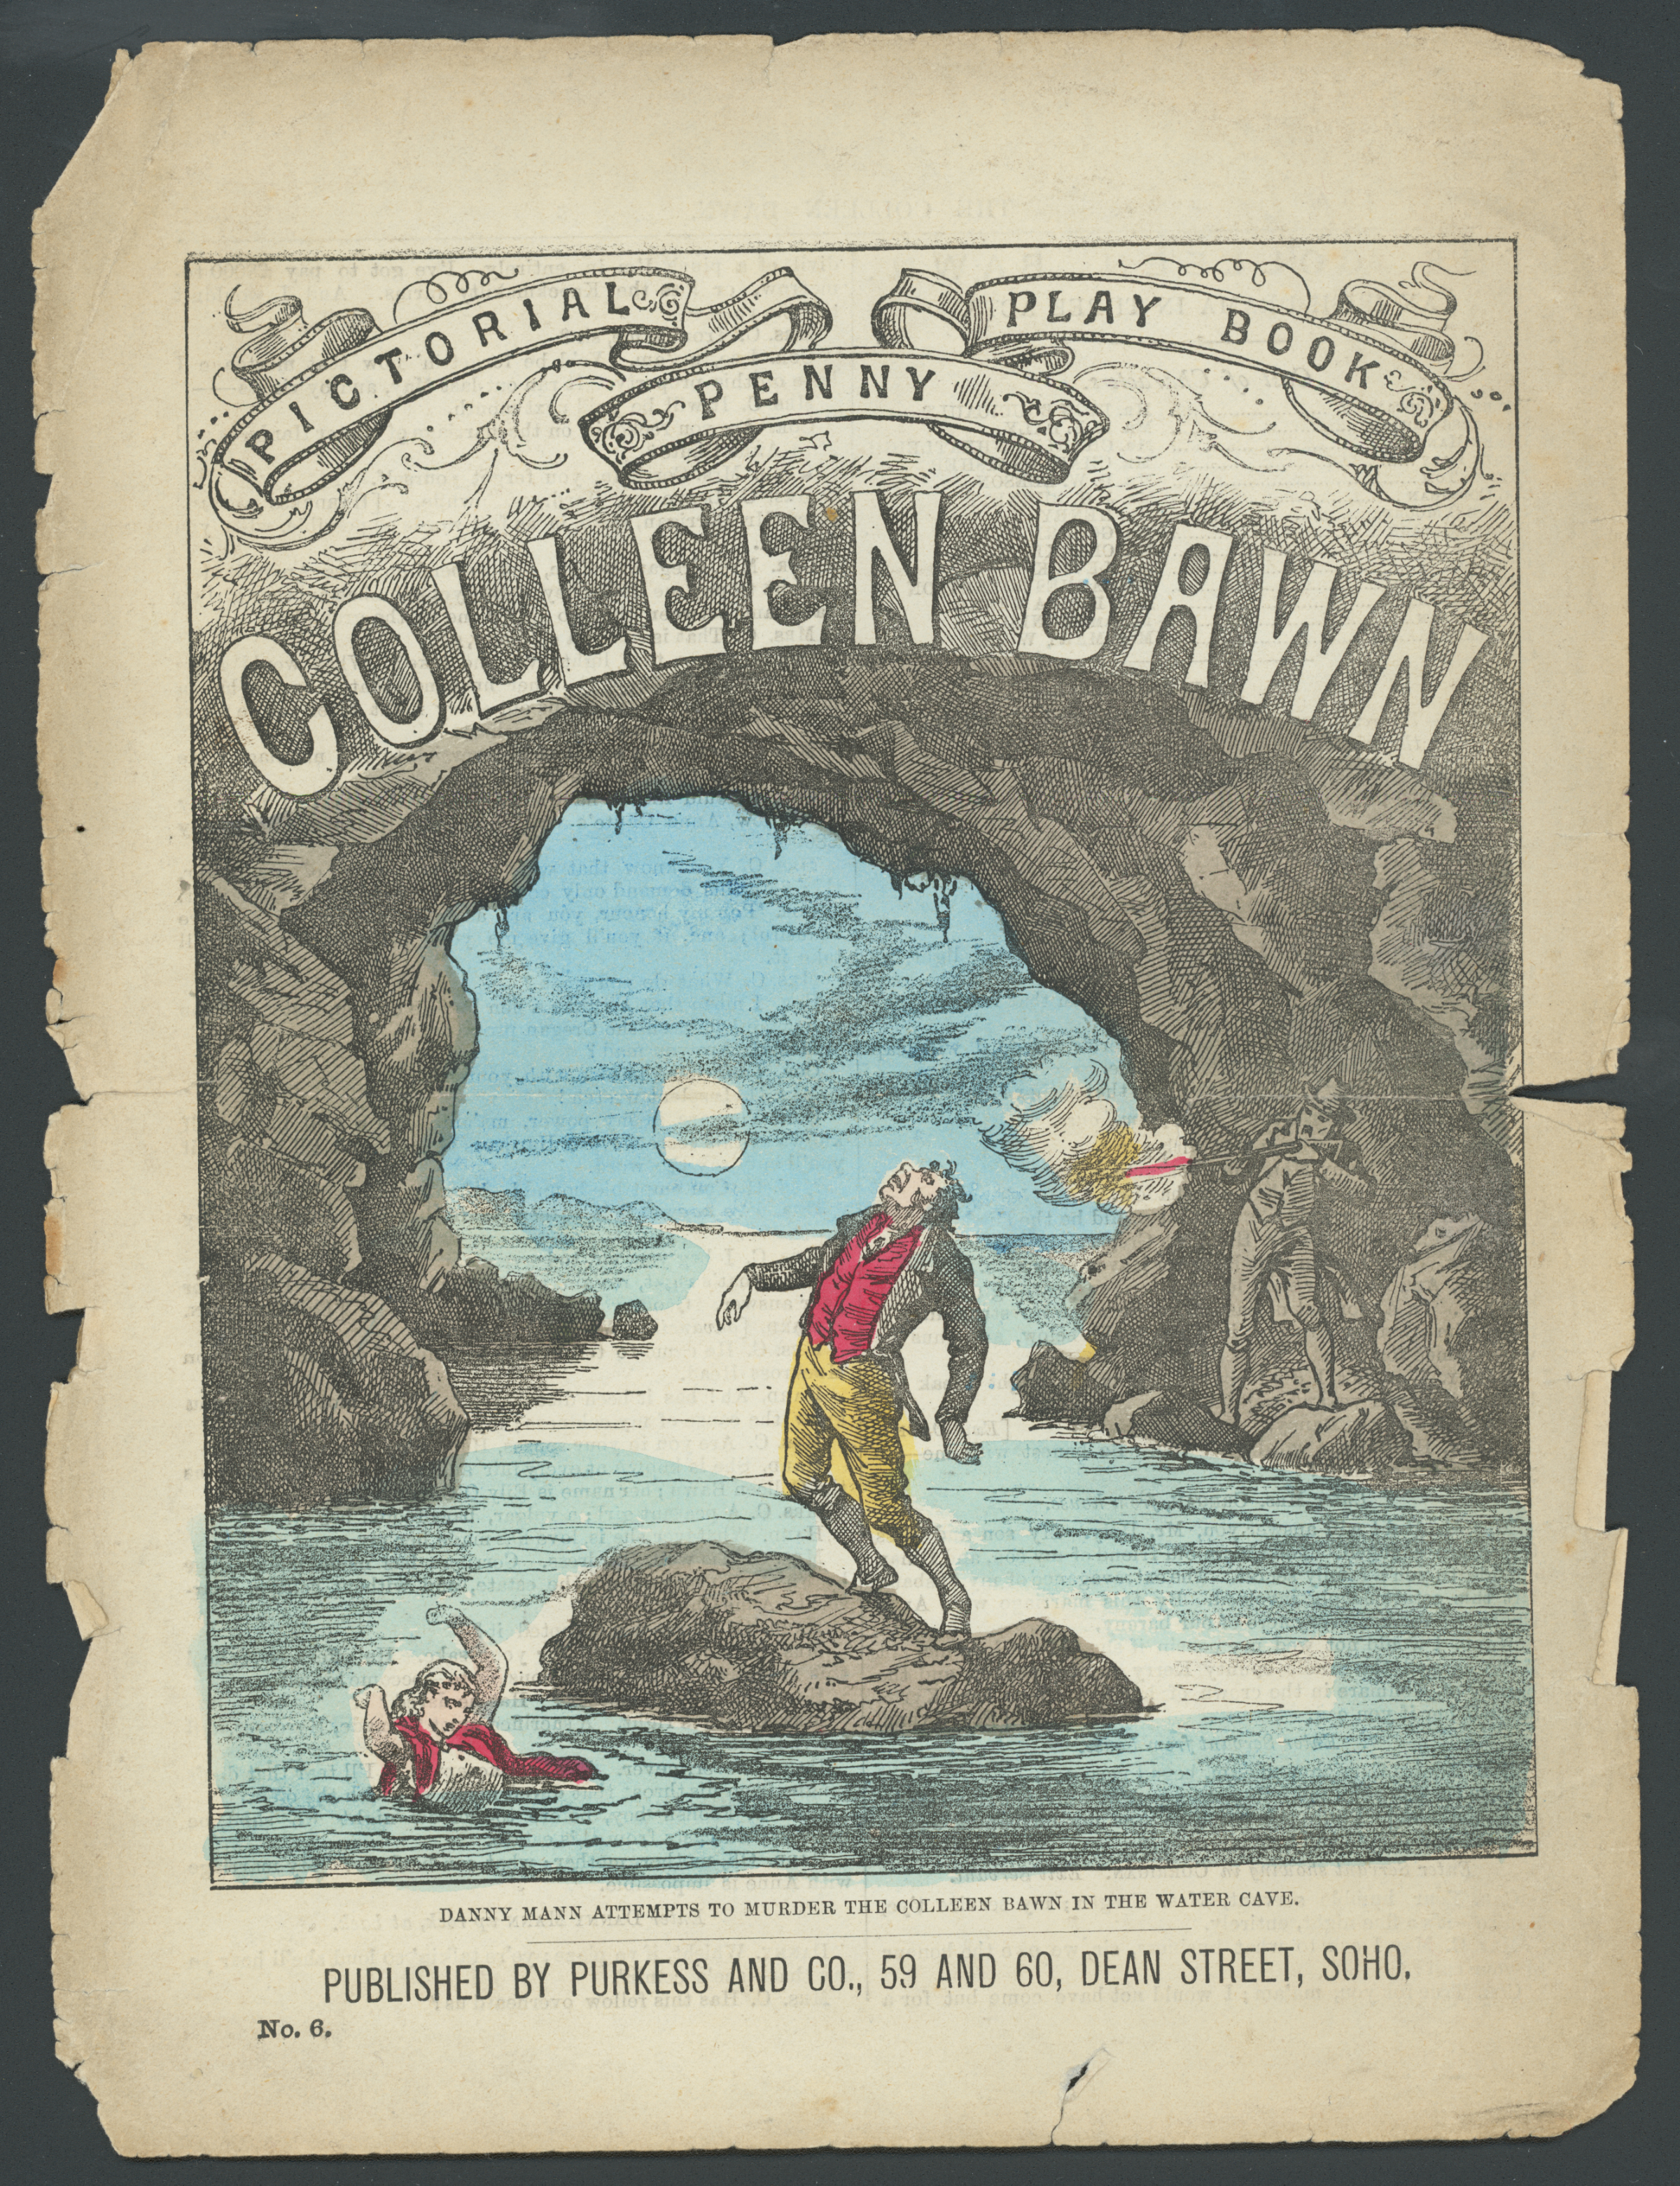 Front cover of a Penny Pictorial Play Book of 'The Colleen Bawn' by Dion Boucicault, featuring a colour illustration of a scene from the play.